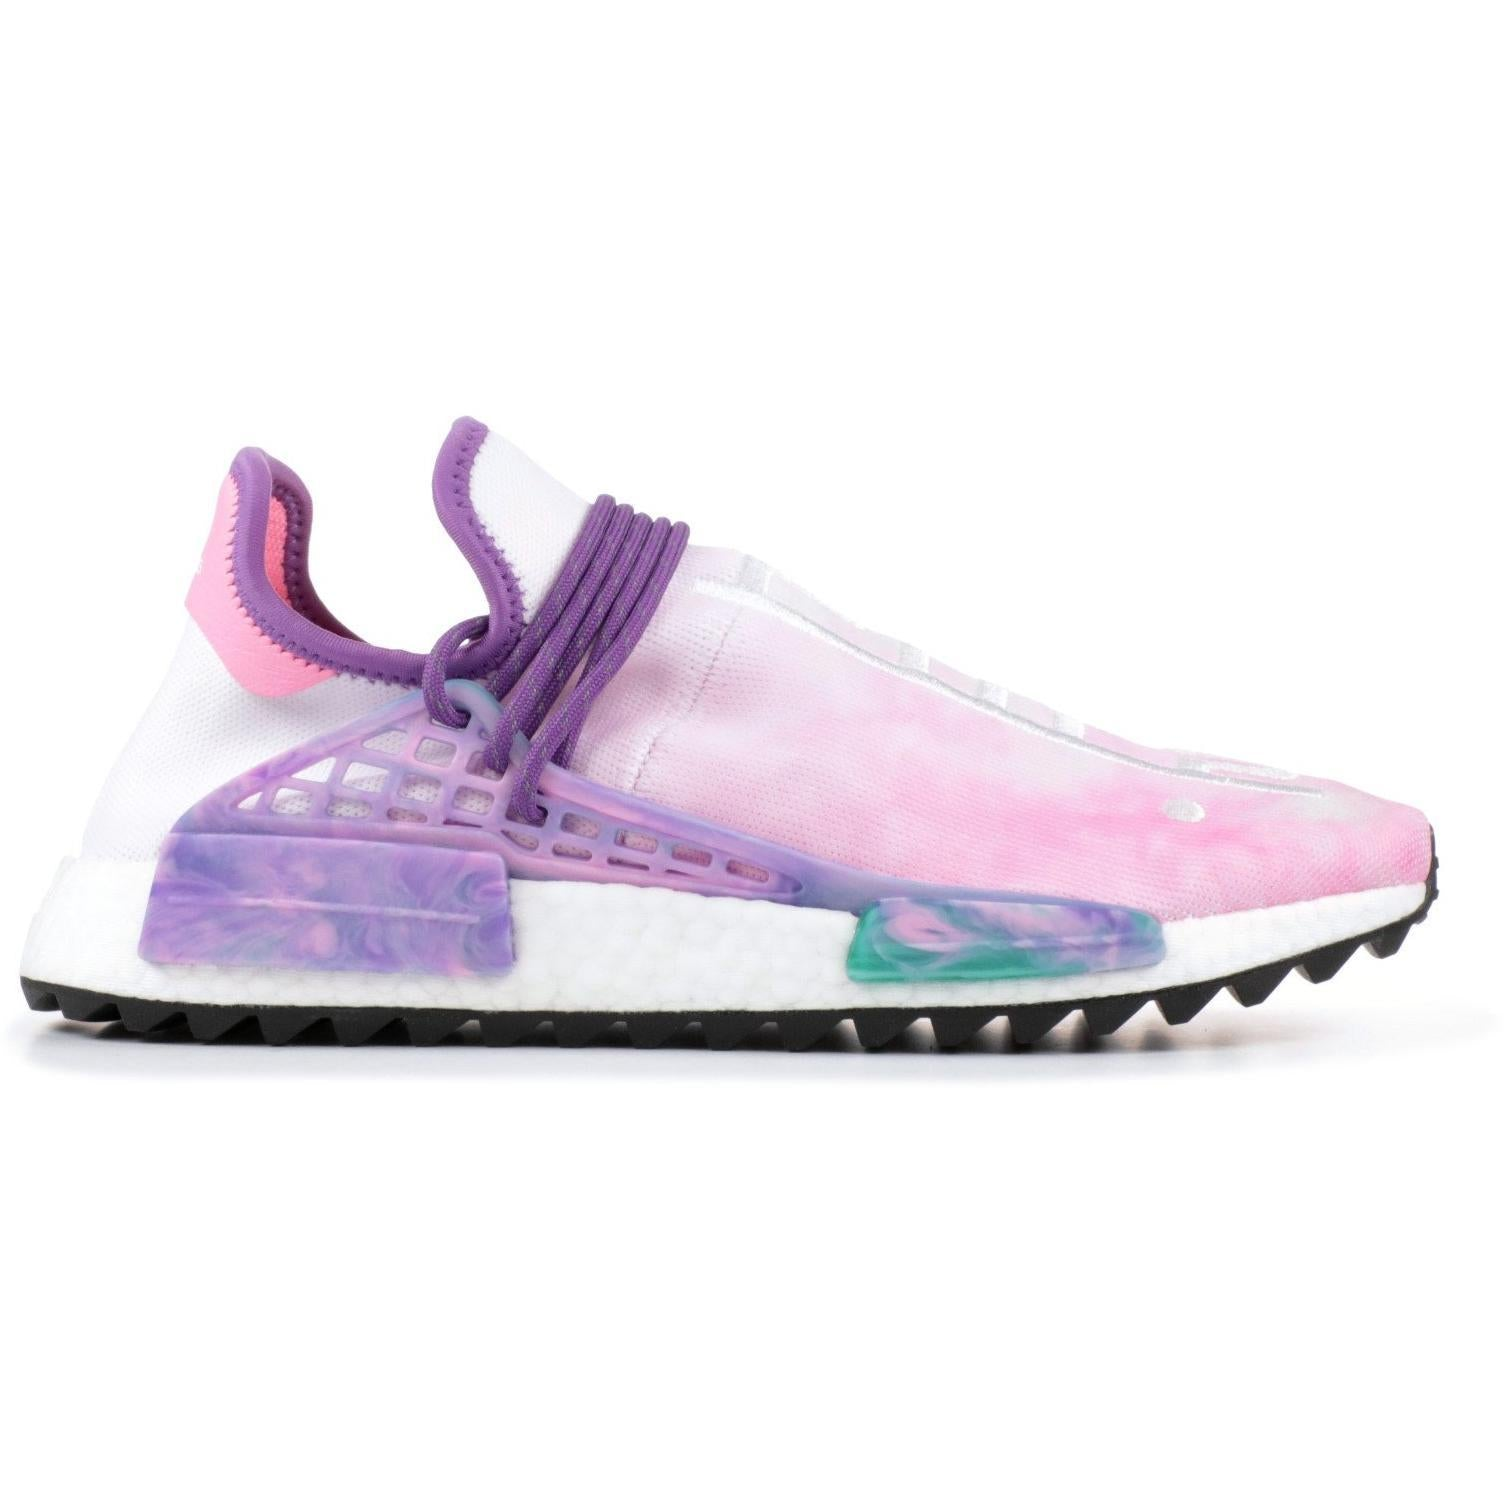 new arrivals 1543f 64177 PW HUMAN RACE NMD TR - HOLI FESTIVAL PACK (PINK GLOW)